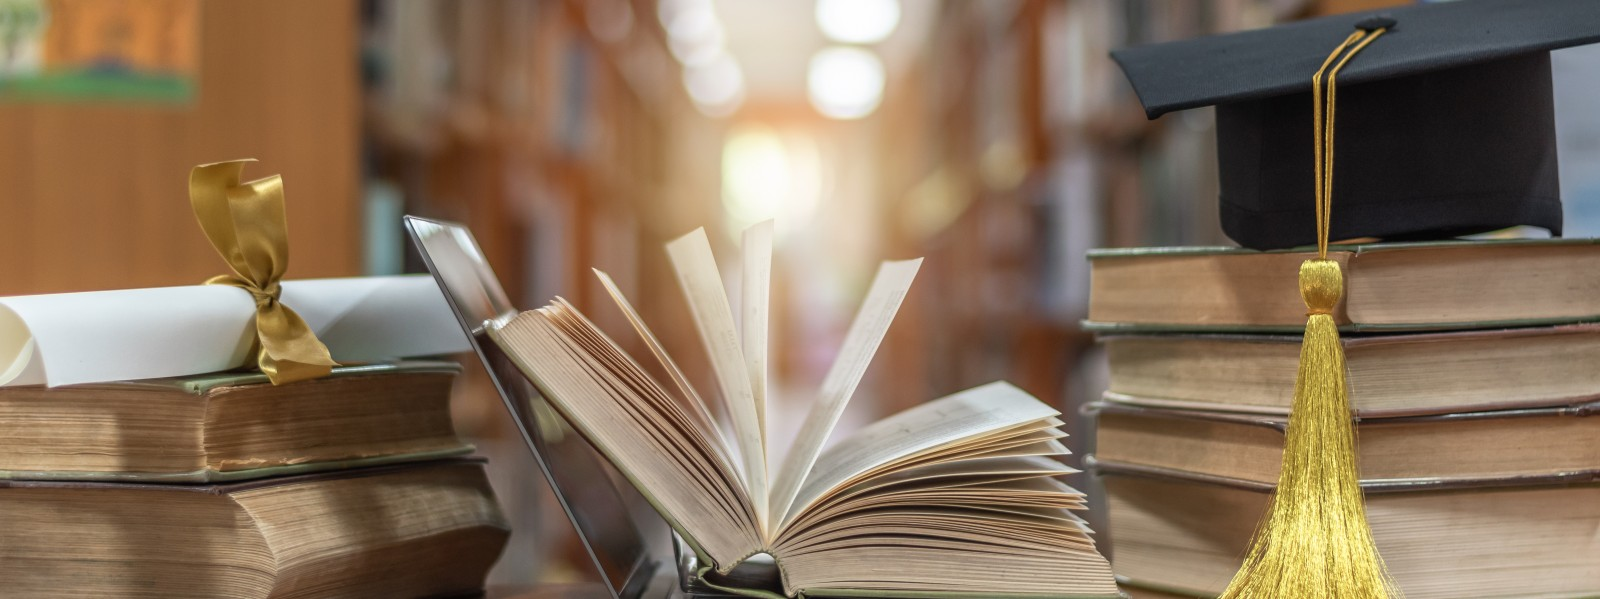 Books in a library with a diploma and graduation cap